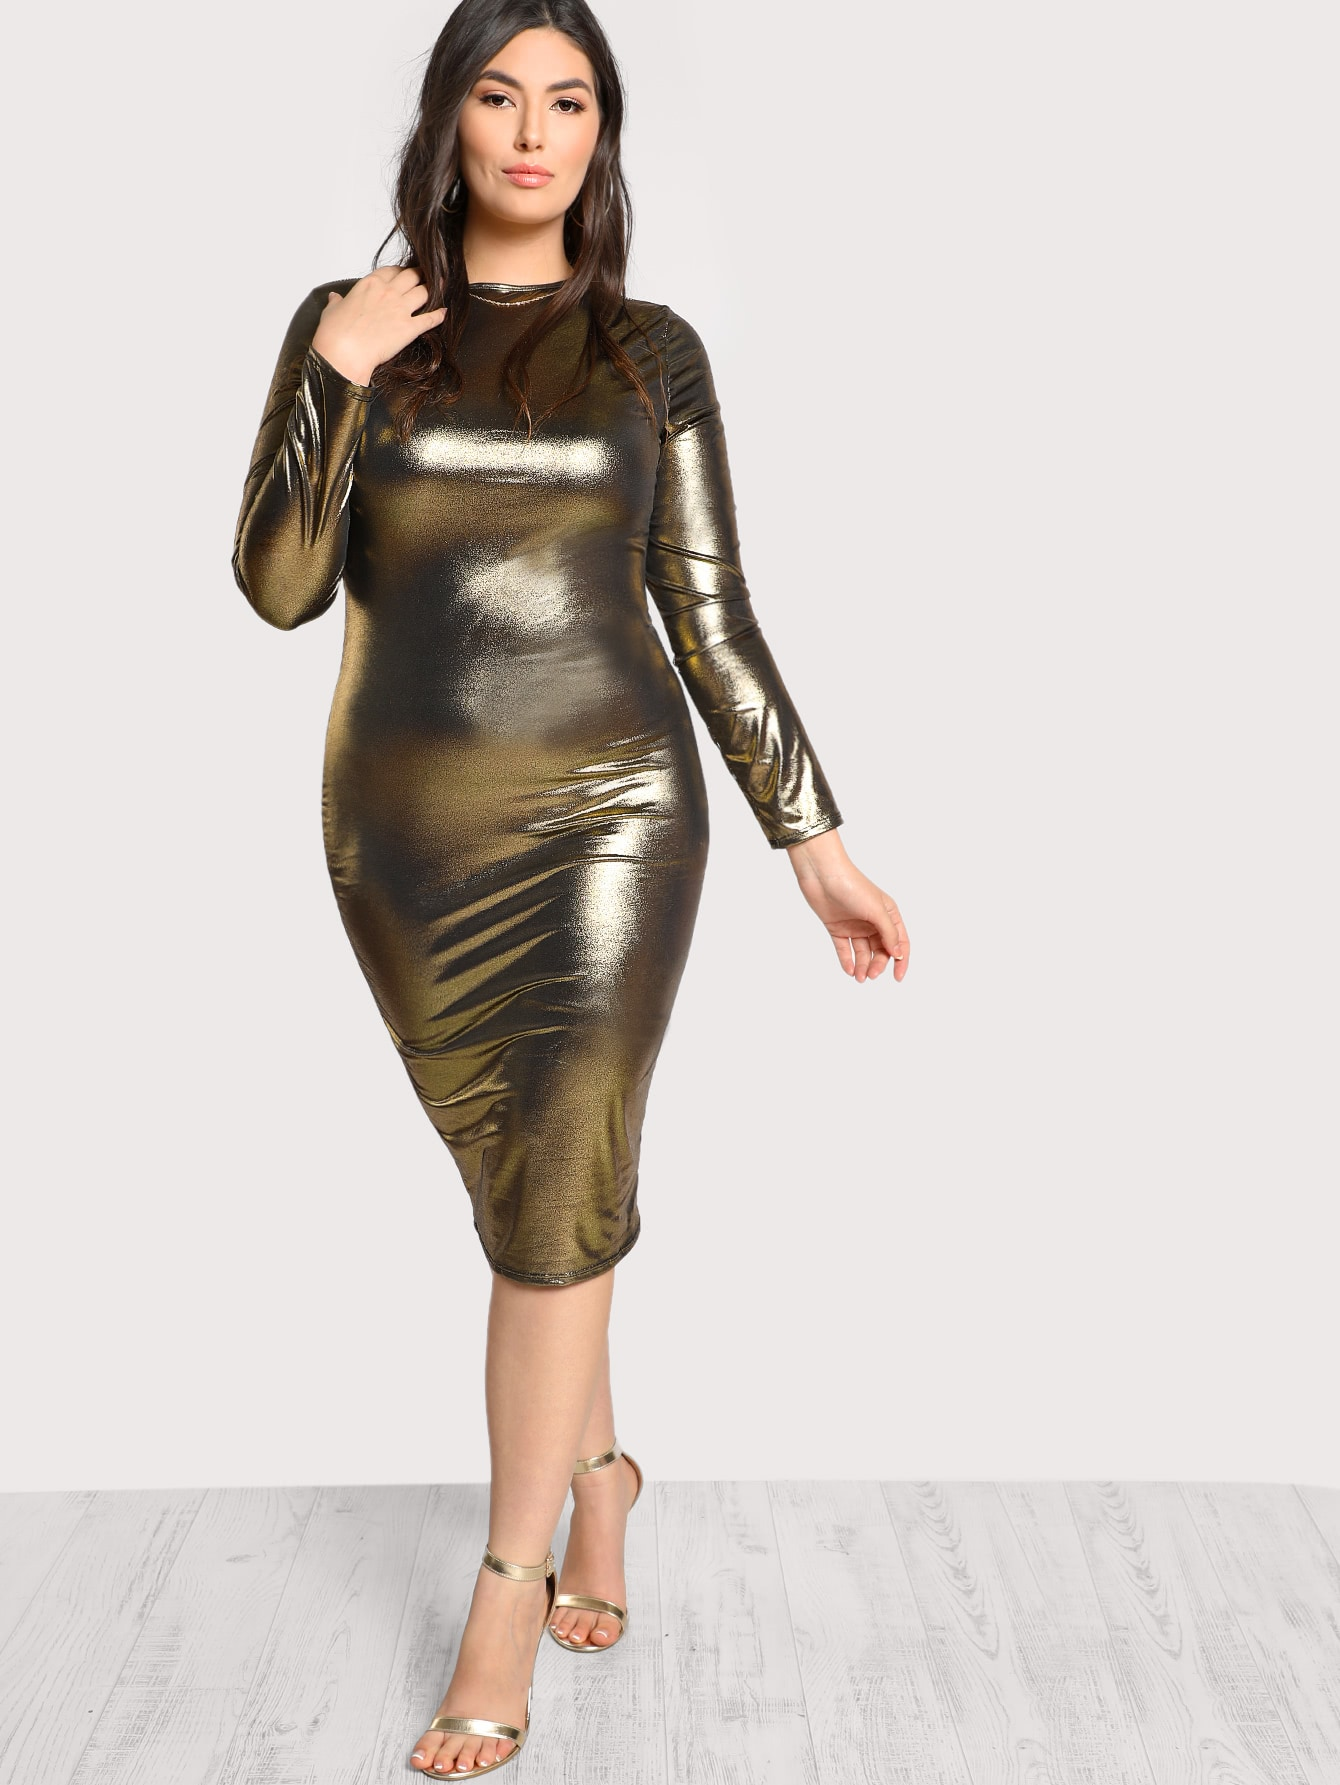 Metallic Form Fitting Dress